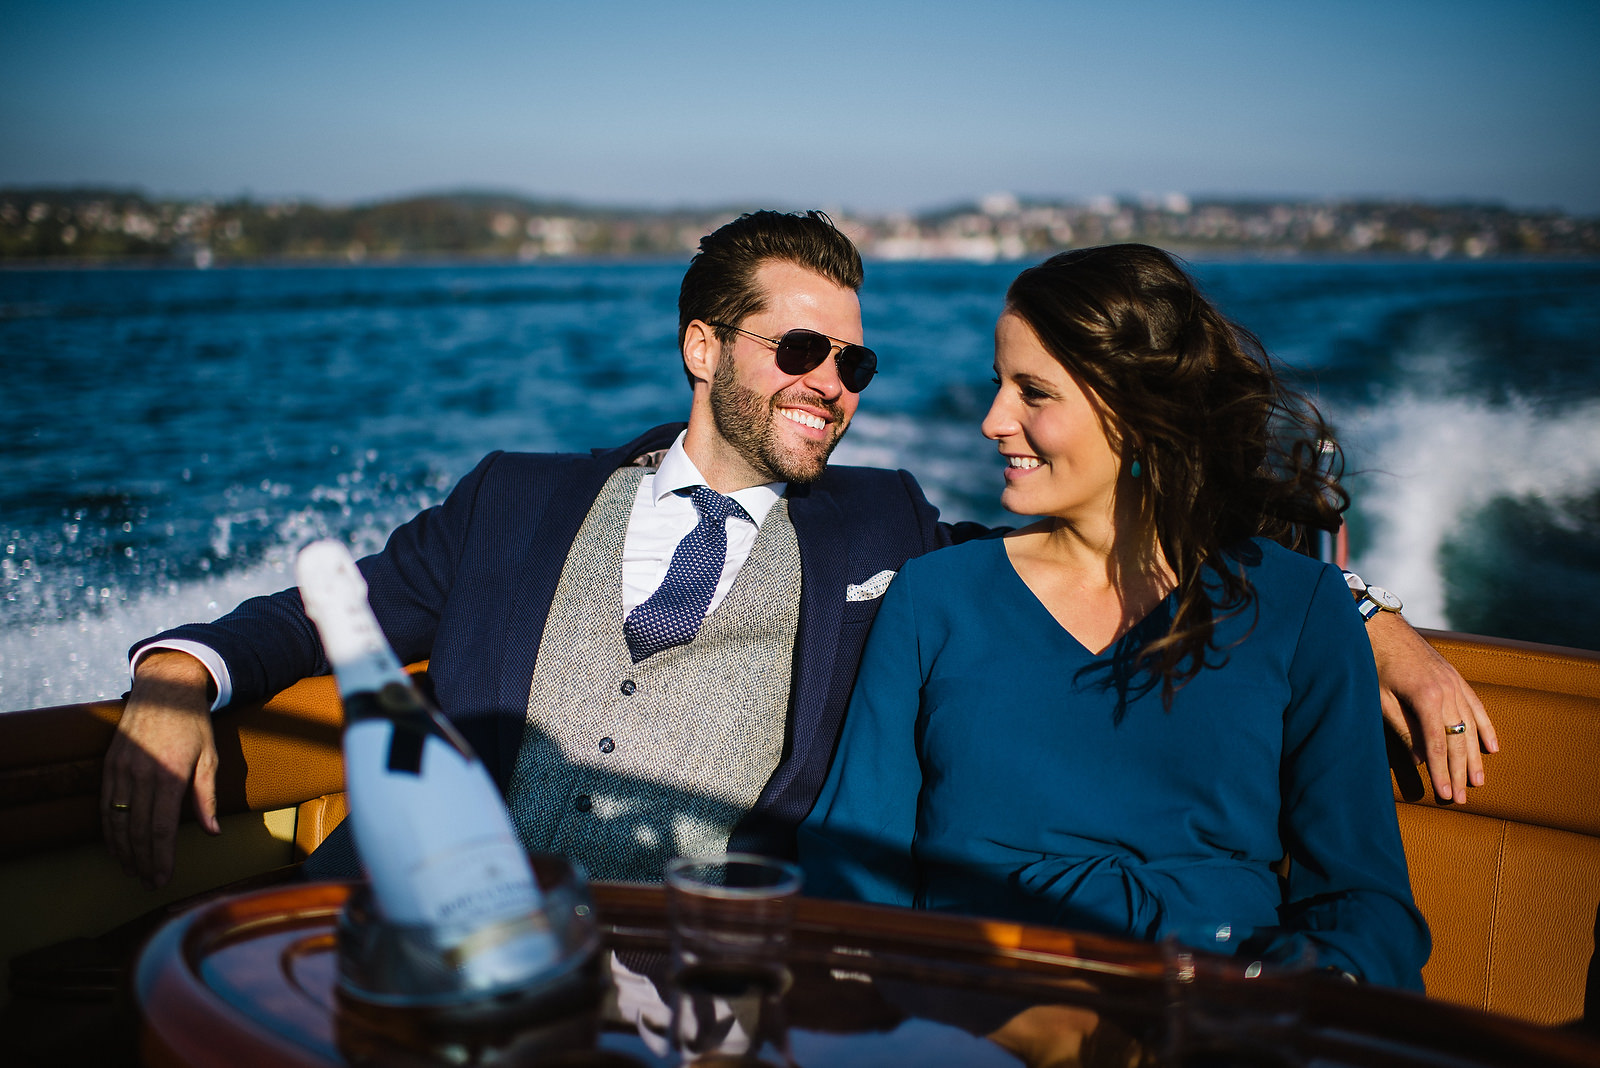 Fotograf Konstanz - Couple Shooting on Lake Constance with a Pegiva motor boat  - 3 -